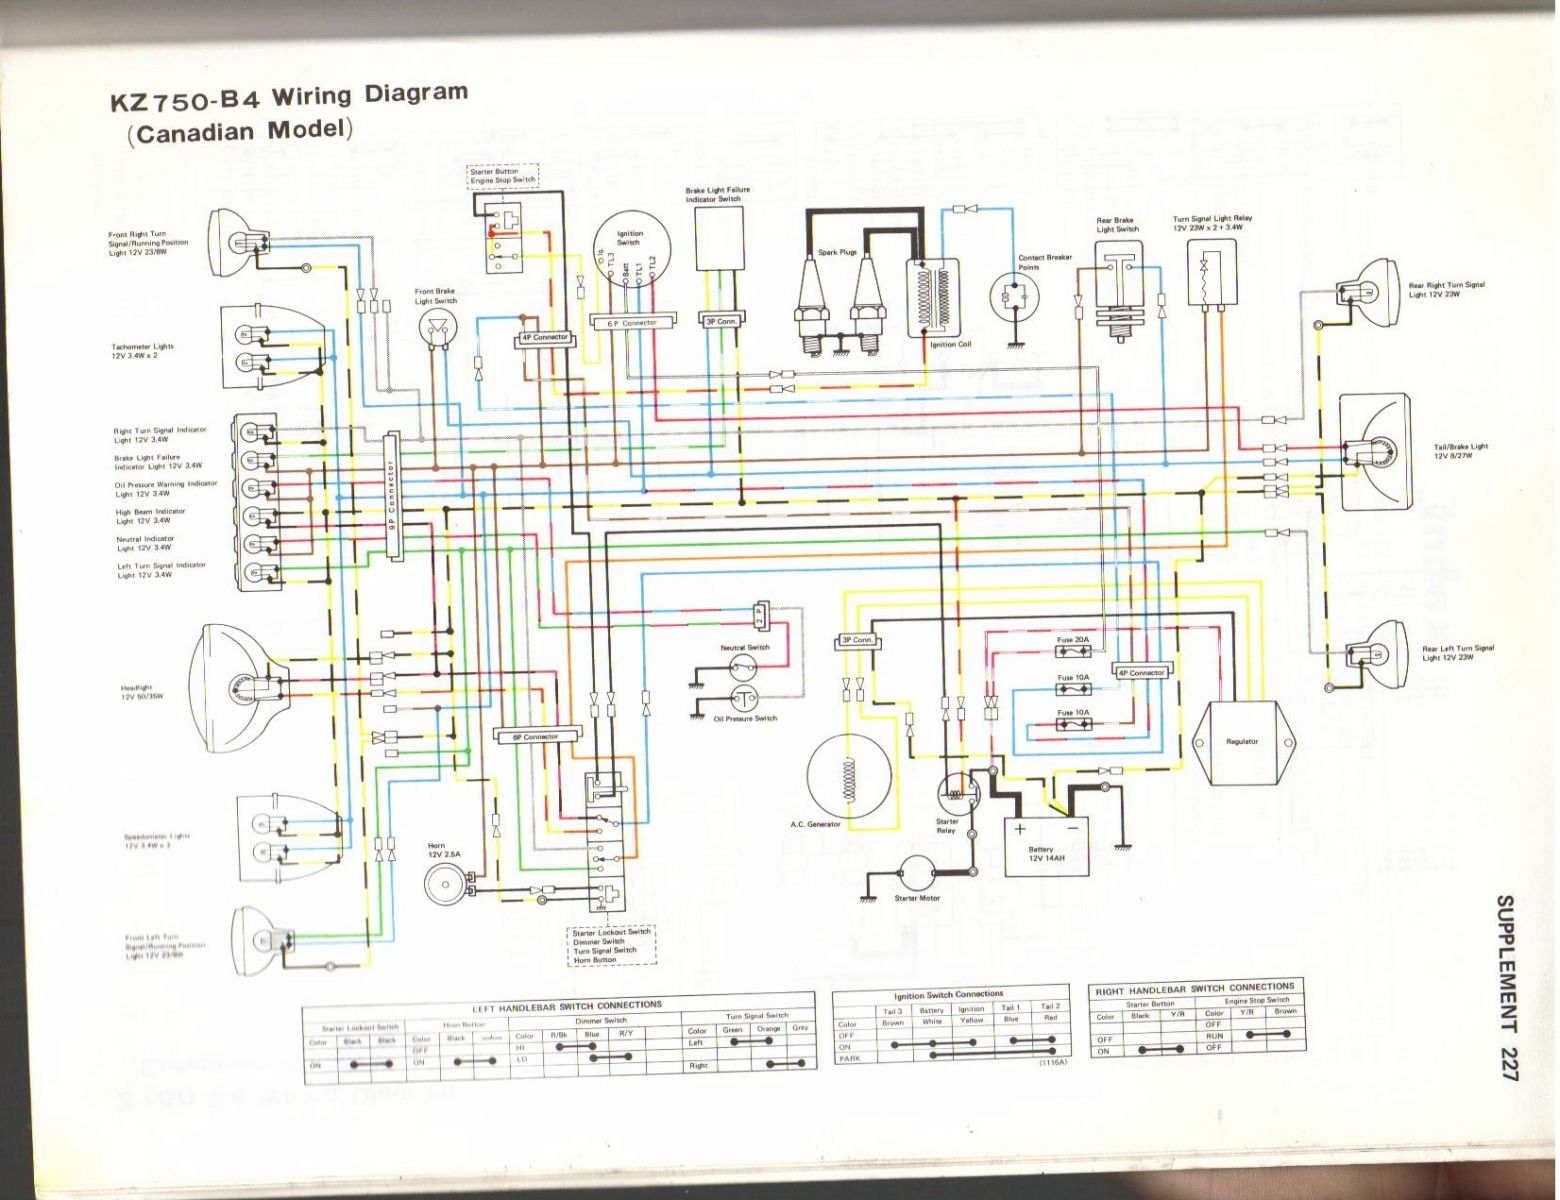 kz750b4wiringdiagram kawasaki kz750 pick up pulser coil points wire kzrider forum kz750 wiring diagram at crackthecode.co